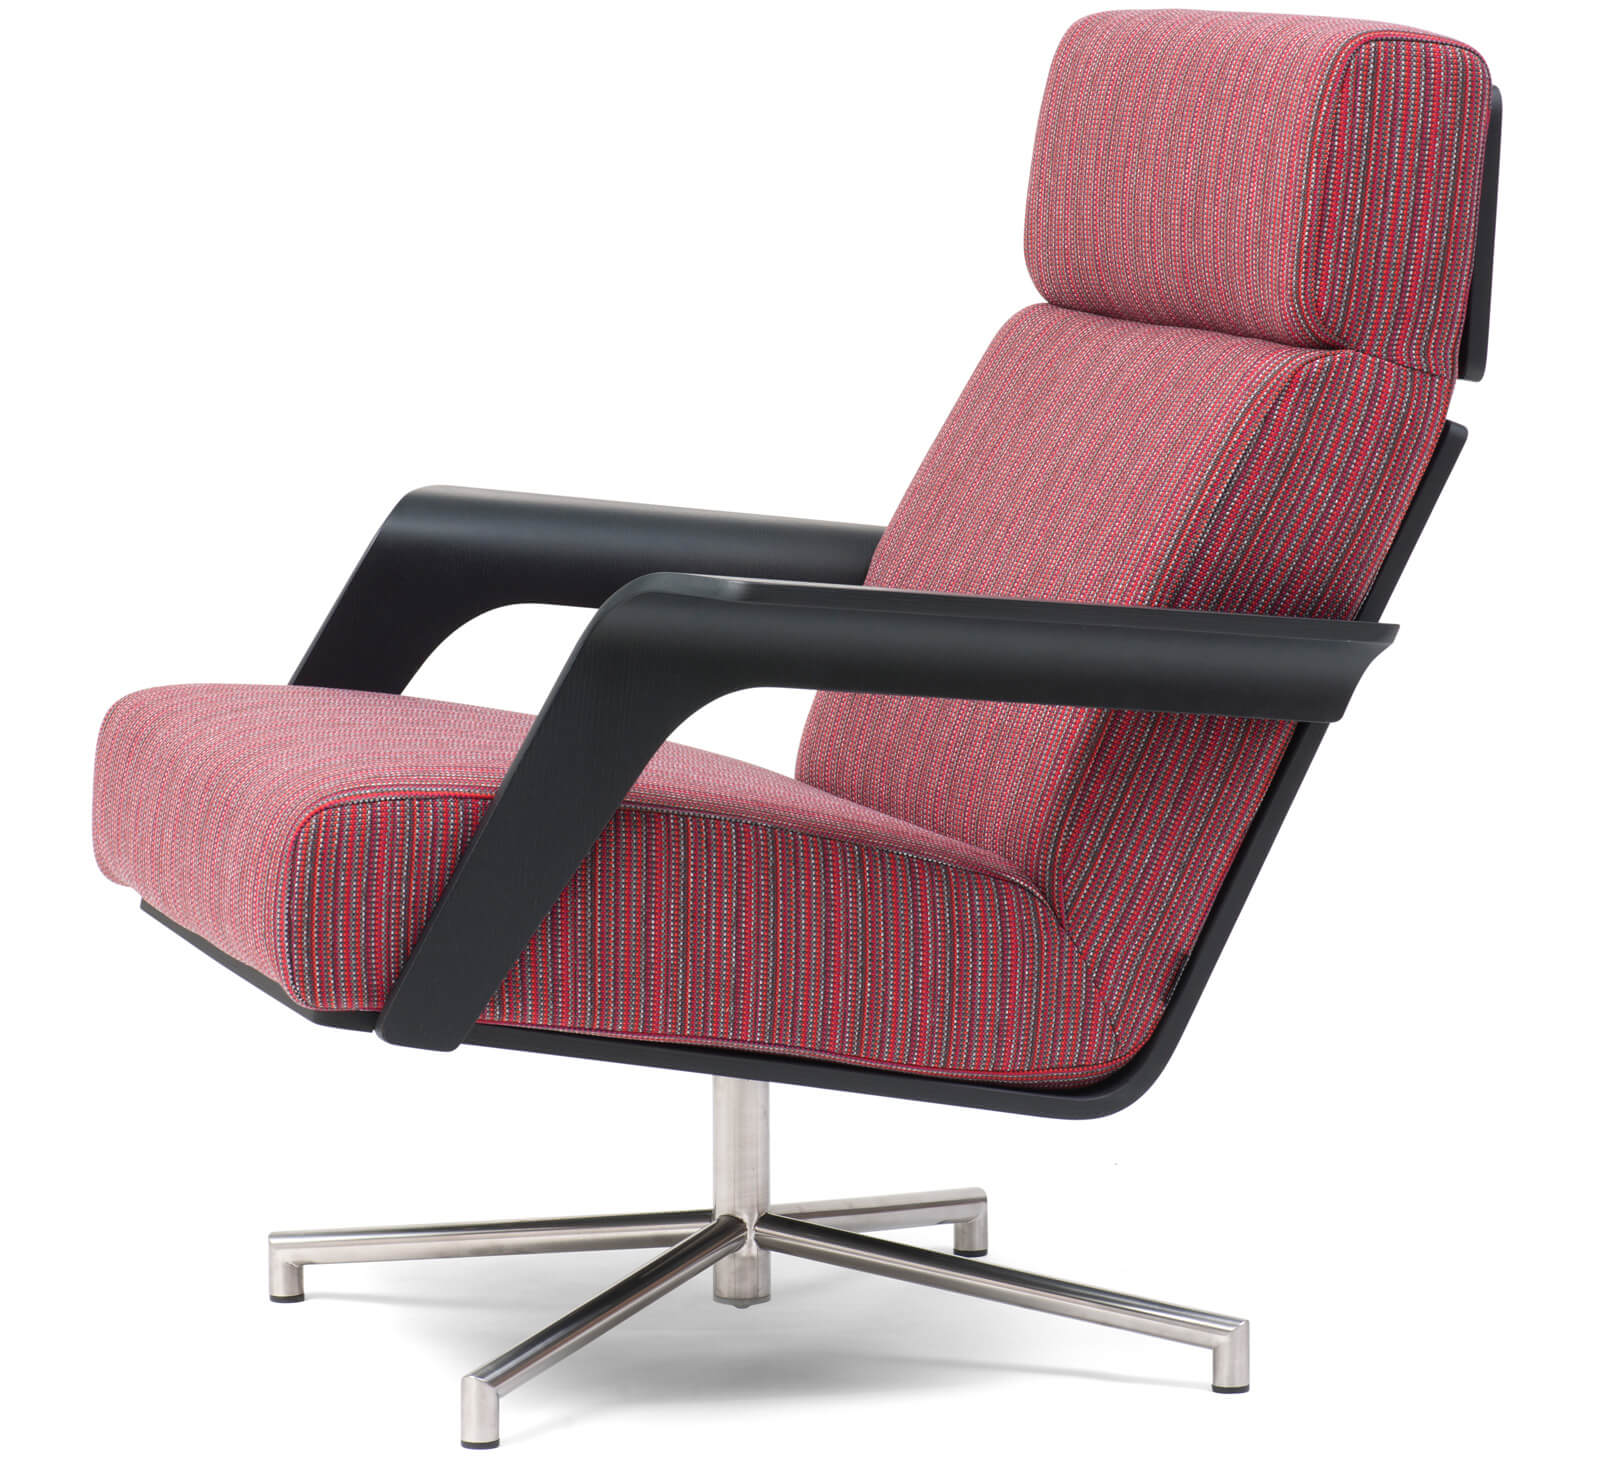 Harvink Design Fauteuil.Harvink De Kaap De Tijd Wonen